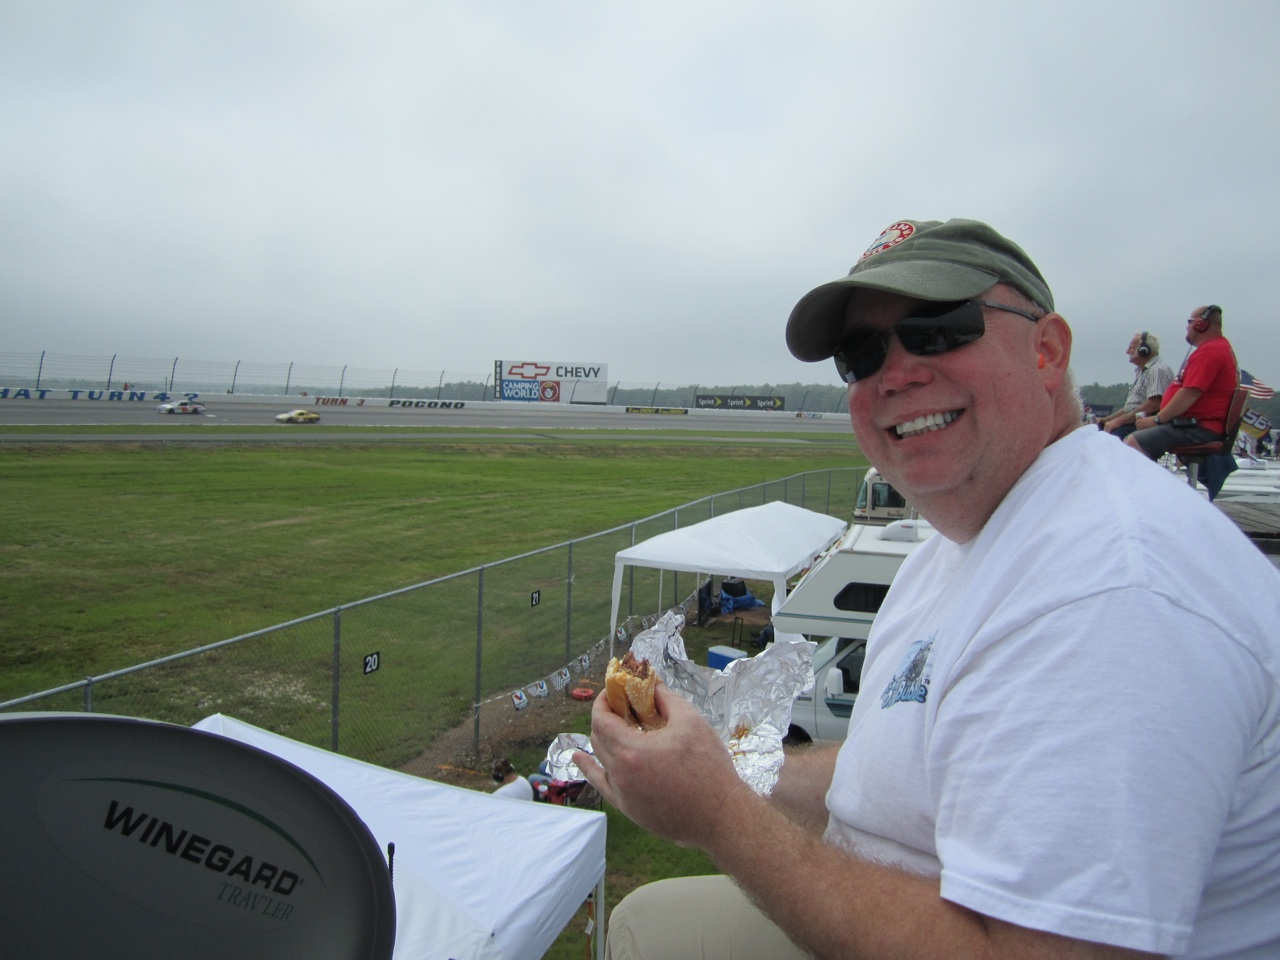 David Having Lunch On The Roof Of The Rig While Watching The Race